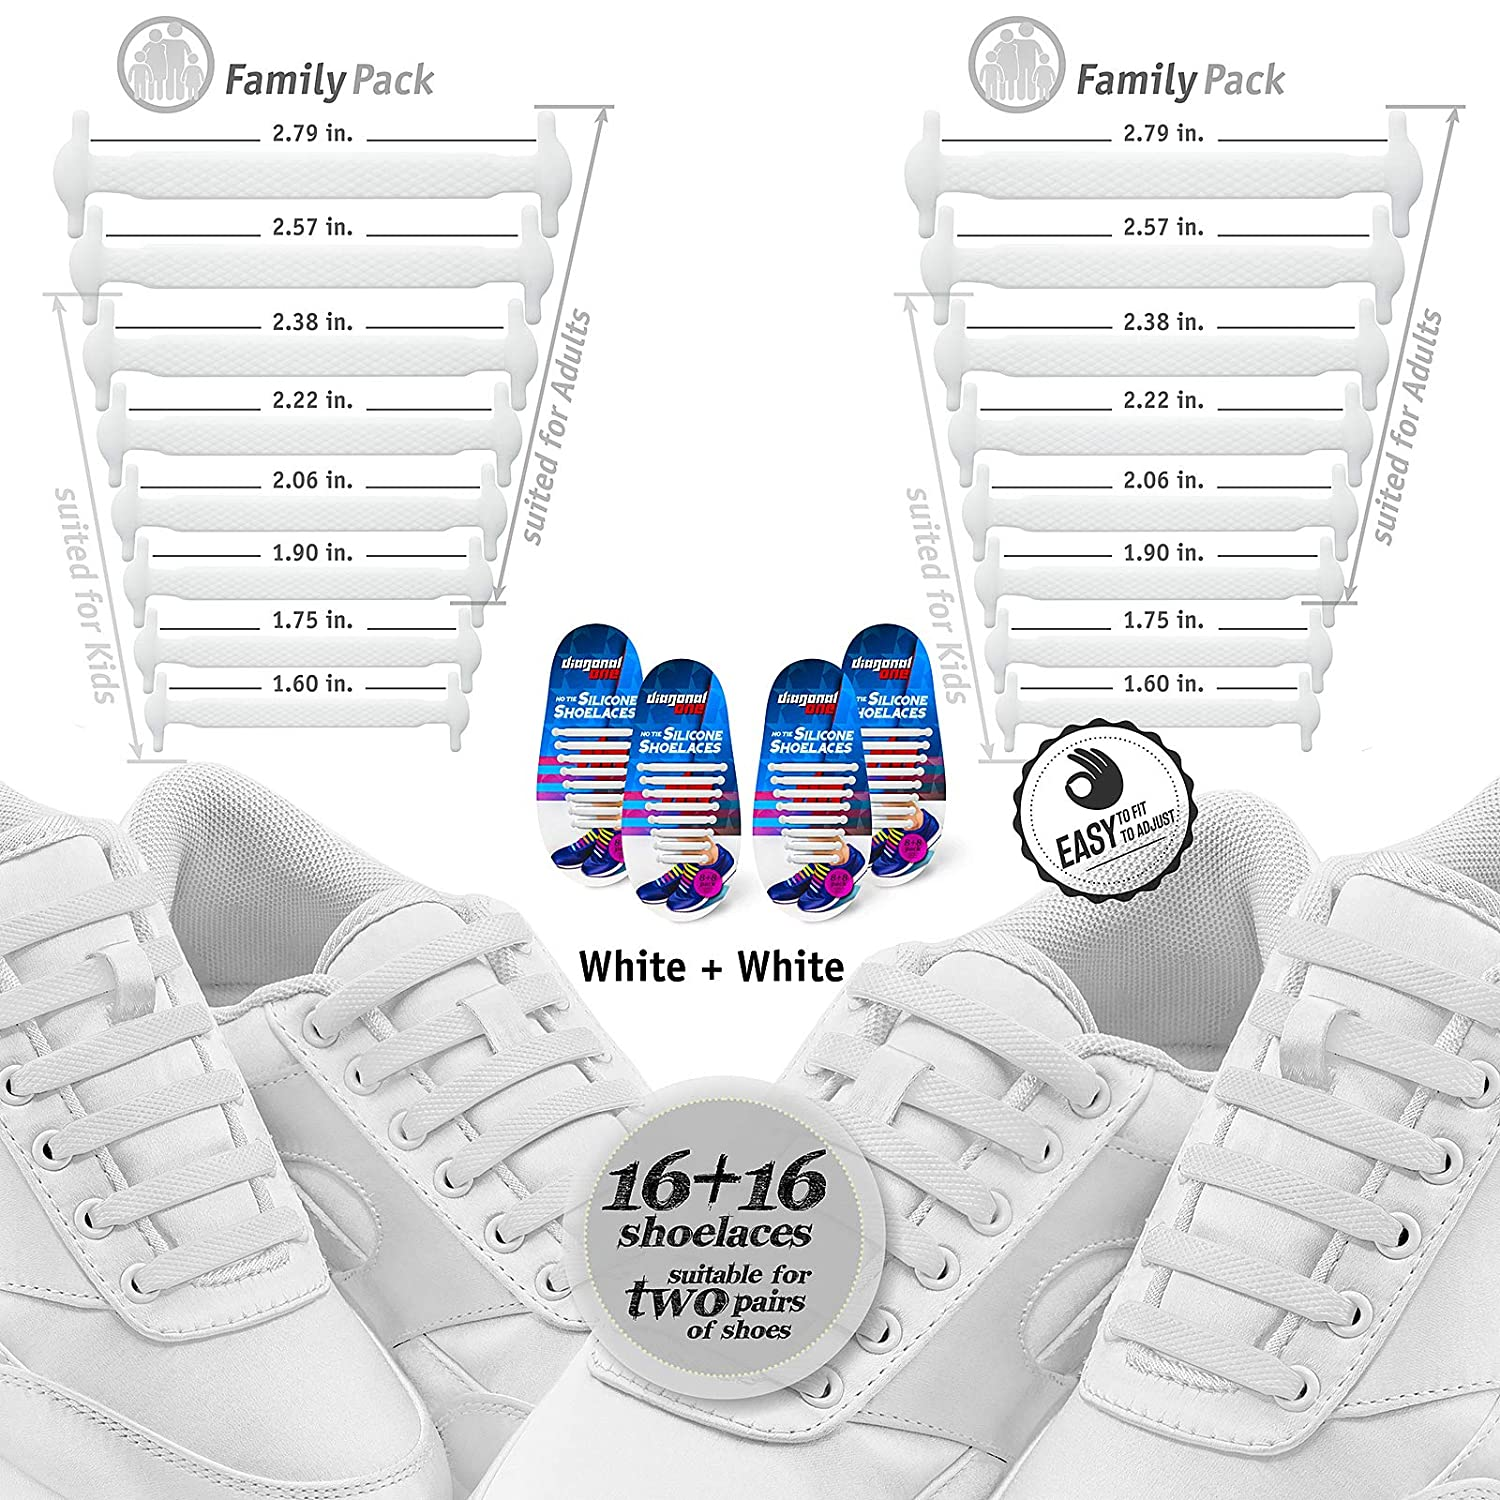 Great for Sneakers and Casual Footwear Diagonal One No Tie Shoelaces Slip On Tieless Elastic Silicone Shoe Laces for Kids Adults /& Seniors